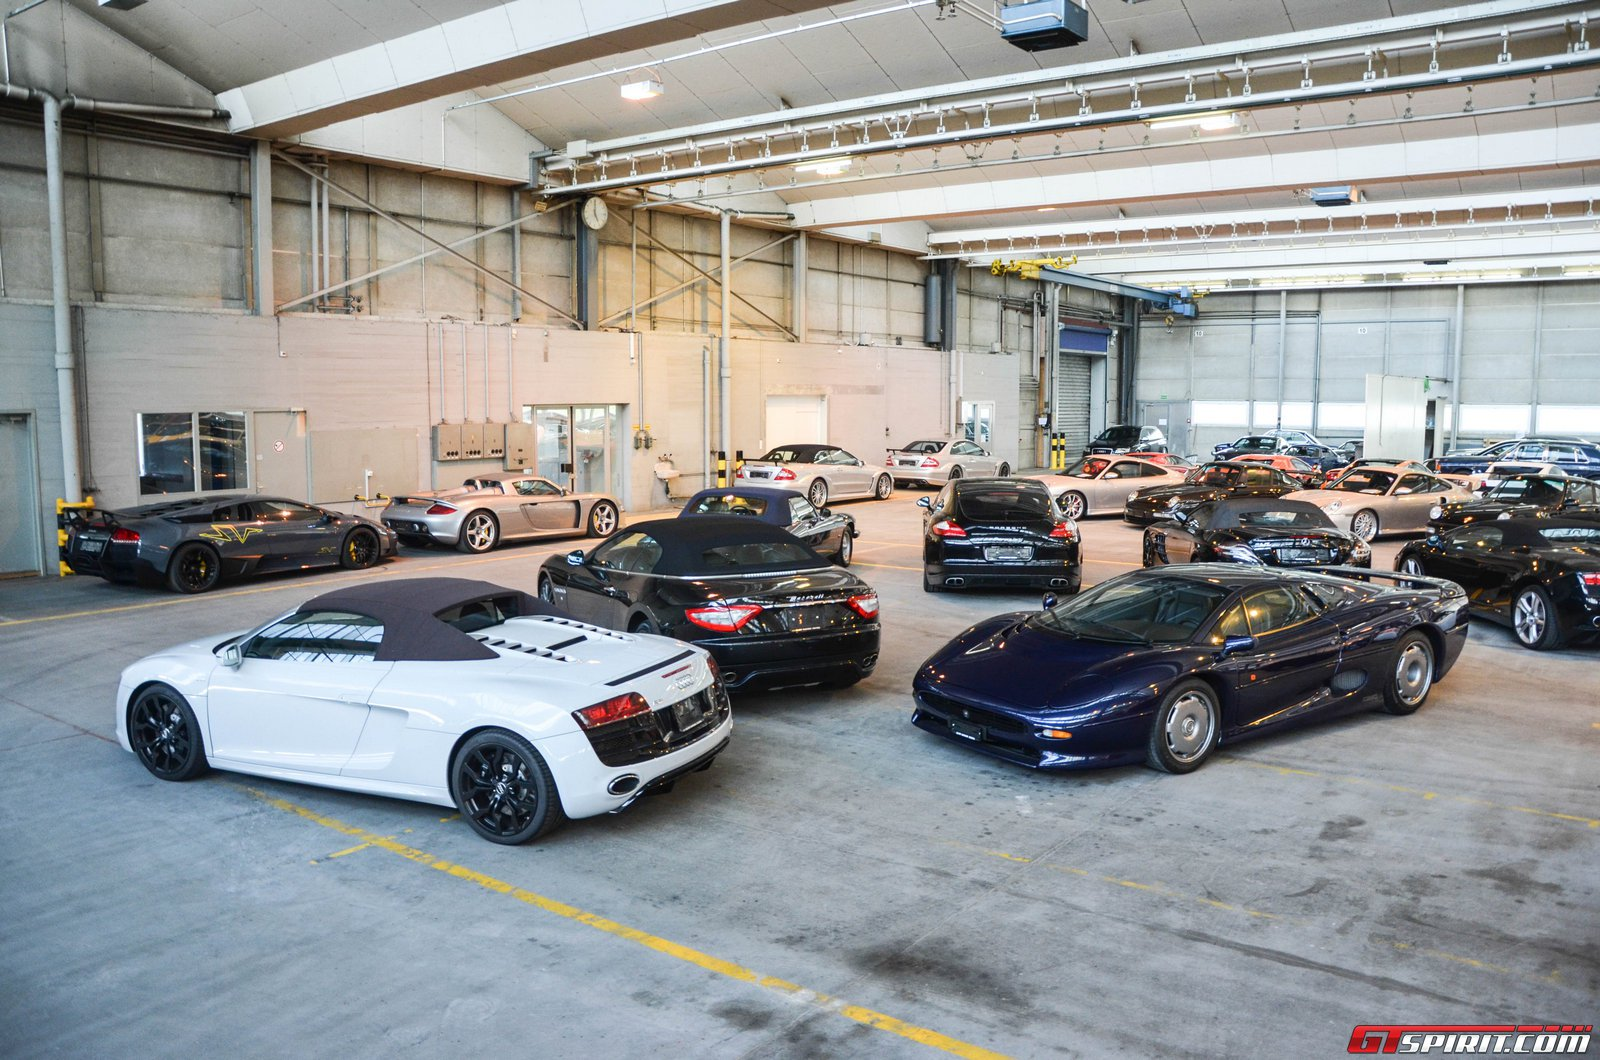 Exotic car garage images galleries for Car garage